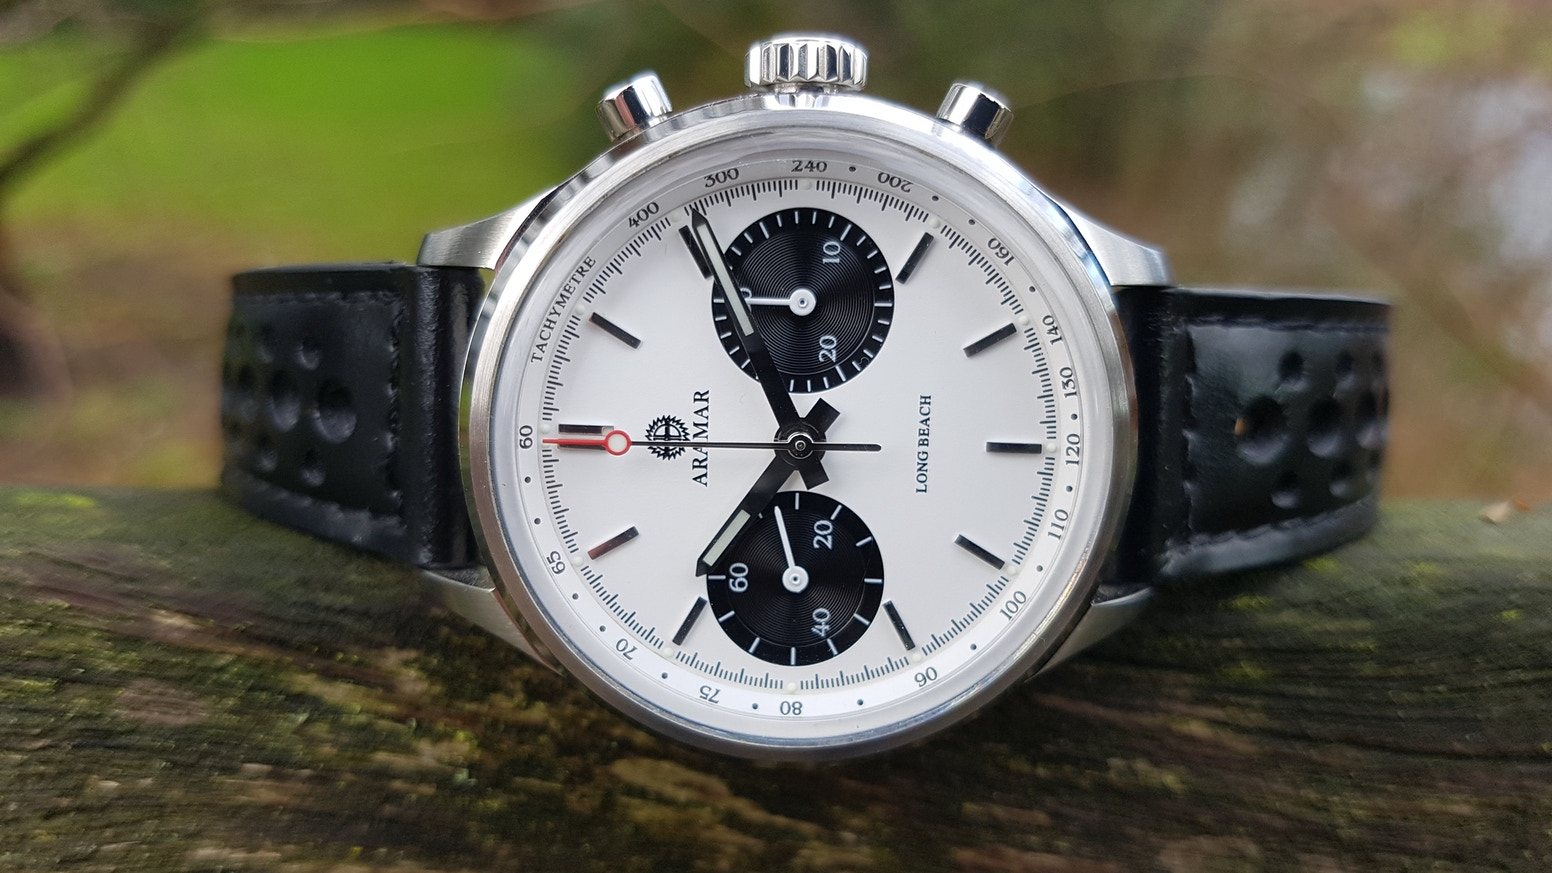 A unique racing chronograph with a panda dial and a Swiss designed mechanical movement. Funded within 28 hours. Did you miss out? No problem there are still a few available as a pre-order!